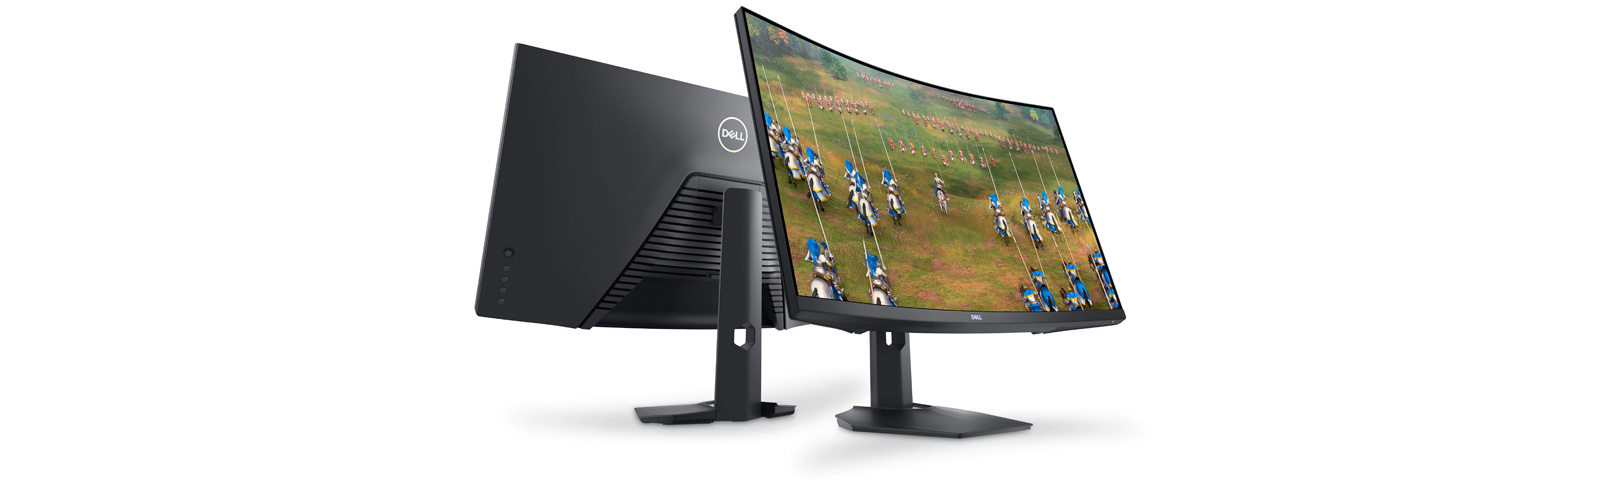 """The Dell S3222HG is launched in Japan with a 31.5"""" curved VA display, 165Hz refresh rate"""